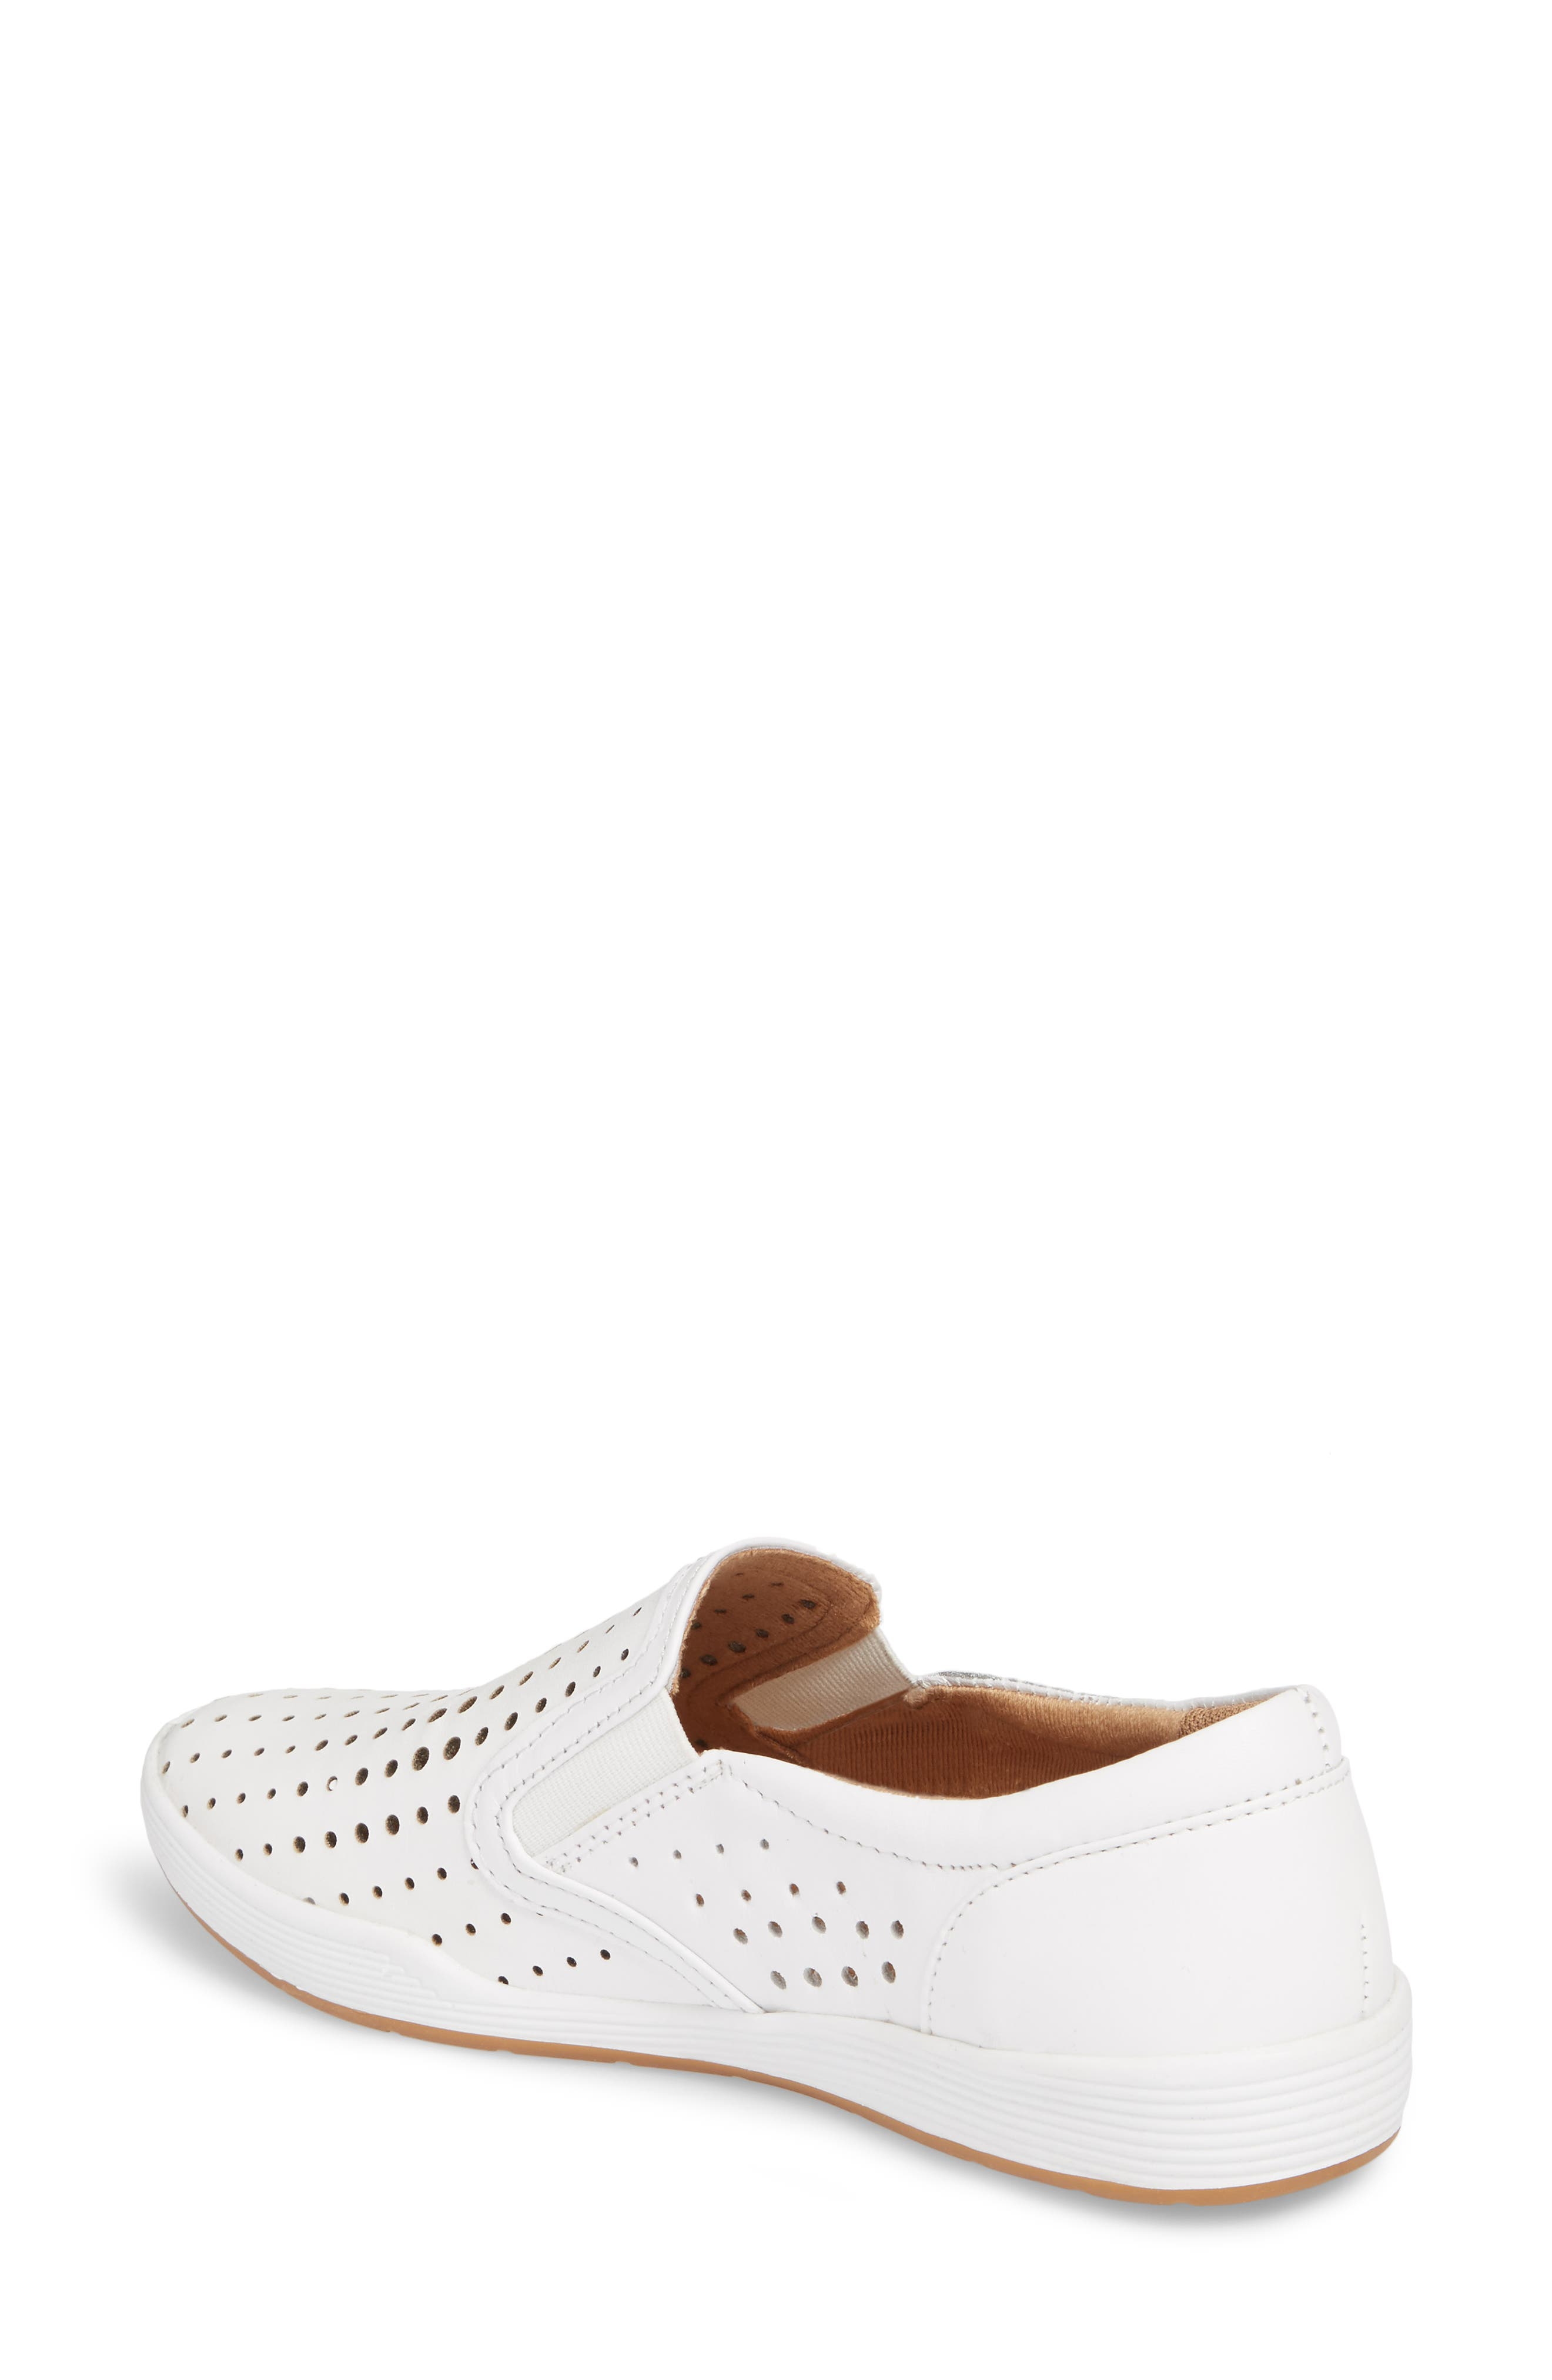 COMFORTIVA, Lyra Perforated Slip-On Sneaker, Alternate thumbnail 2, color, WHITE LEATHER